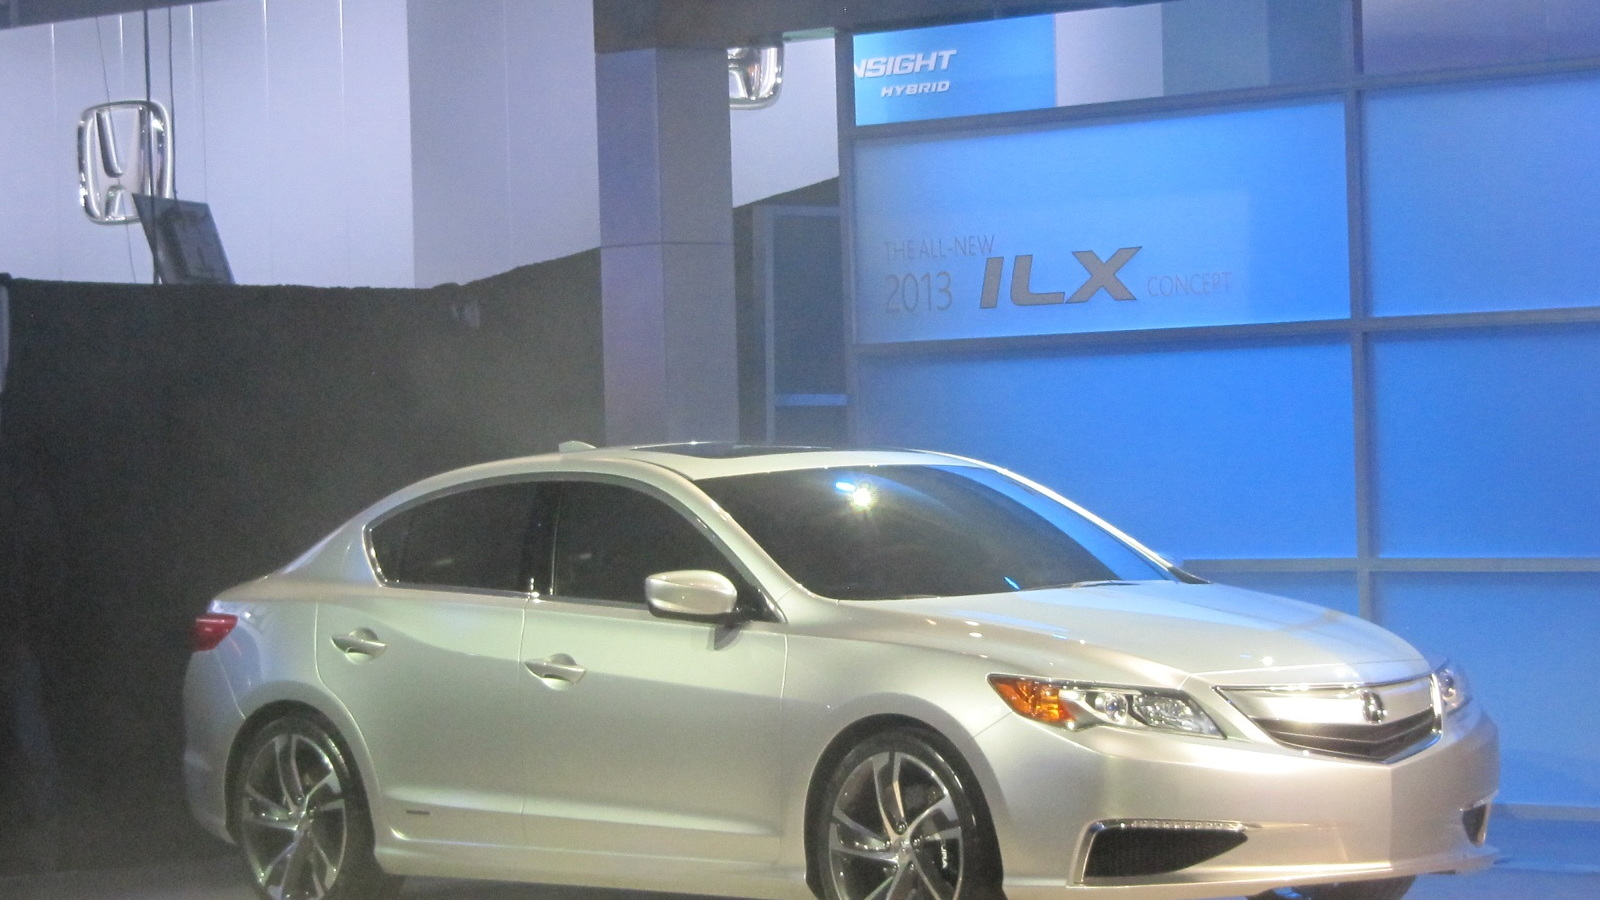 2013 Acura Ilx Compact Luxury Sedan Live Shots More Details